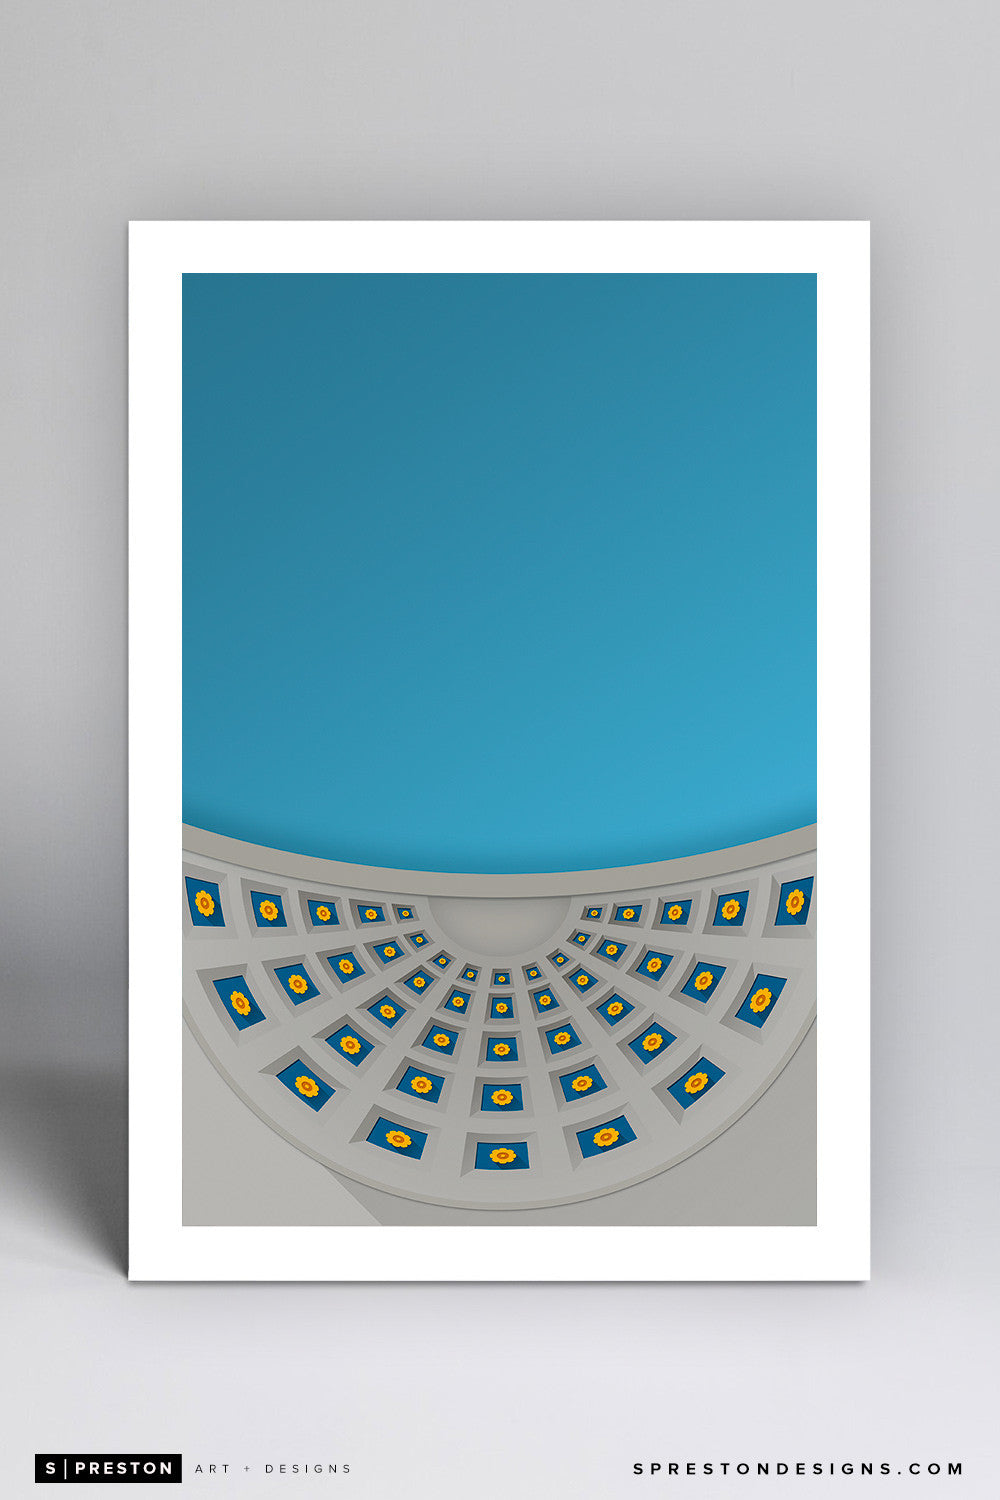 Minimalist Ohio Stadium Art Print - Ohio State University - S. Preston Art + Designs